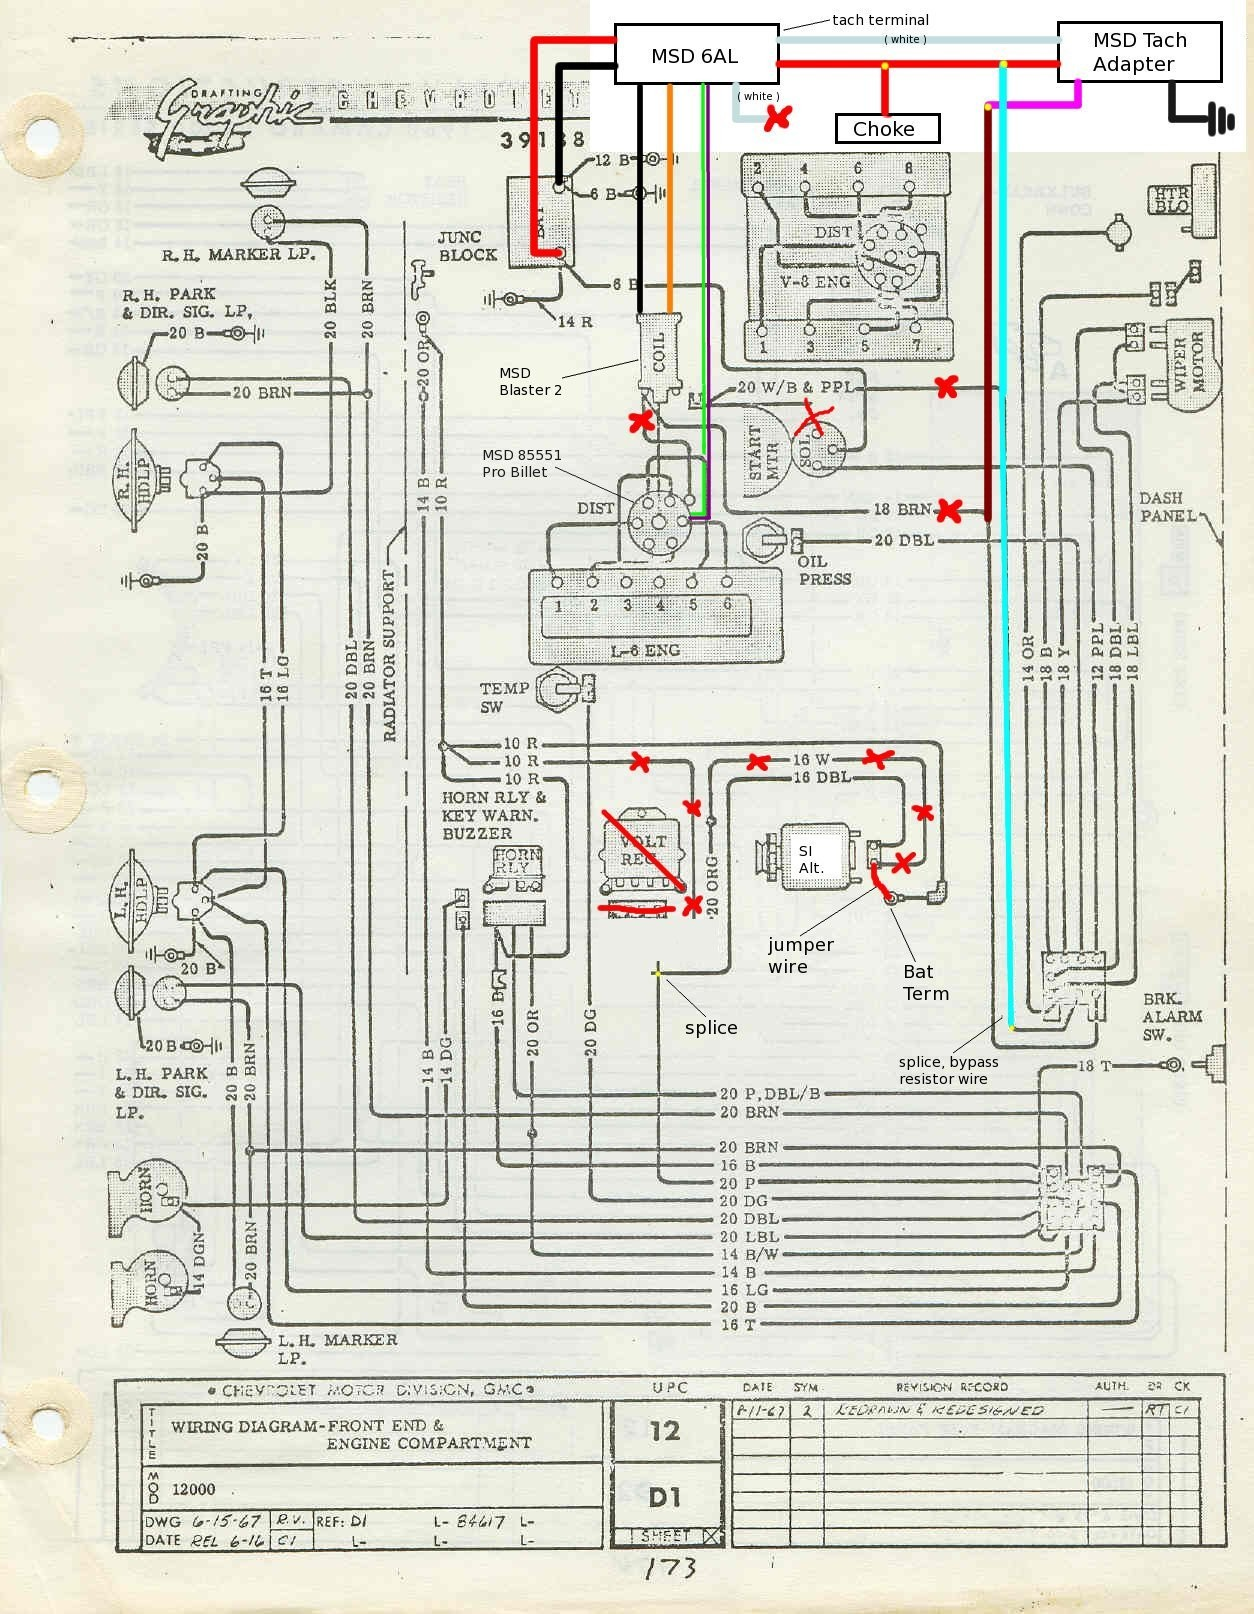 1968 camaro wiring schematics - wiring diagram way-ware-a -  way-ware-a.cinemamanzonicasarano.it  cinemamanzonicasarano.it